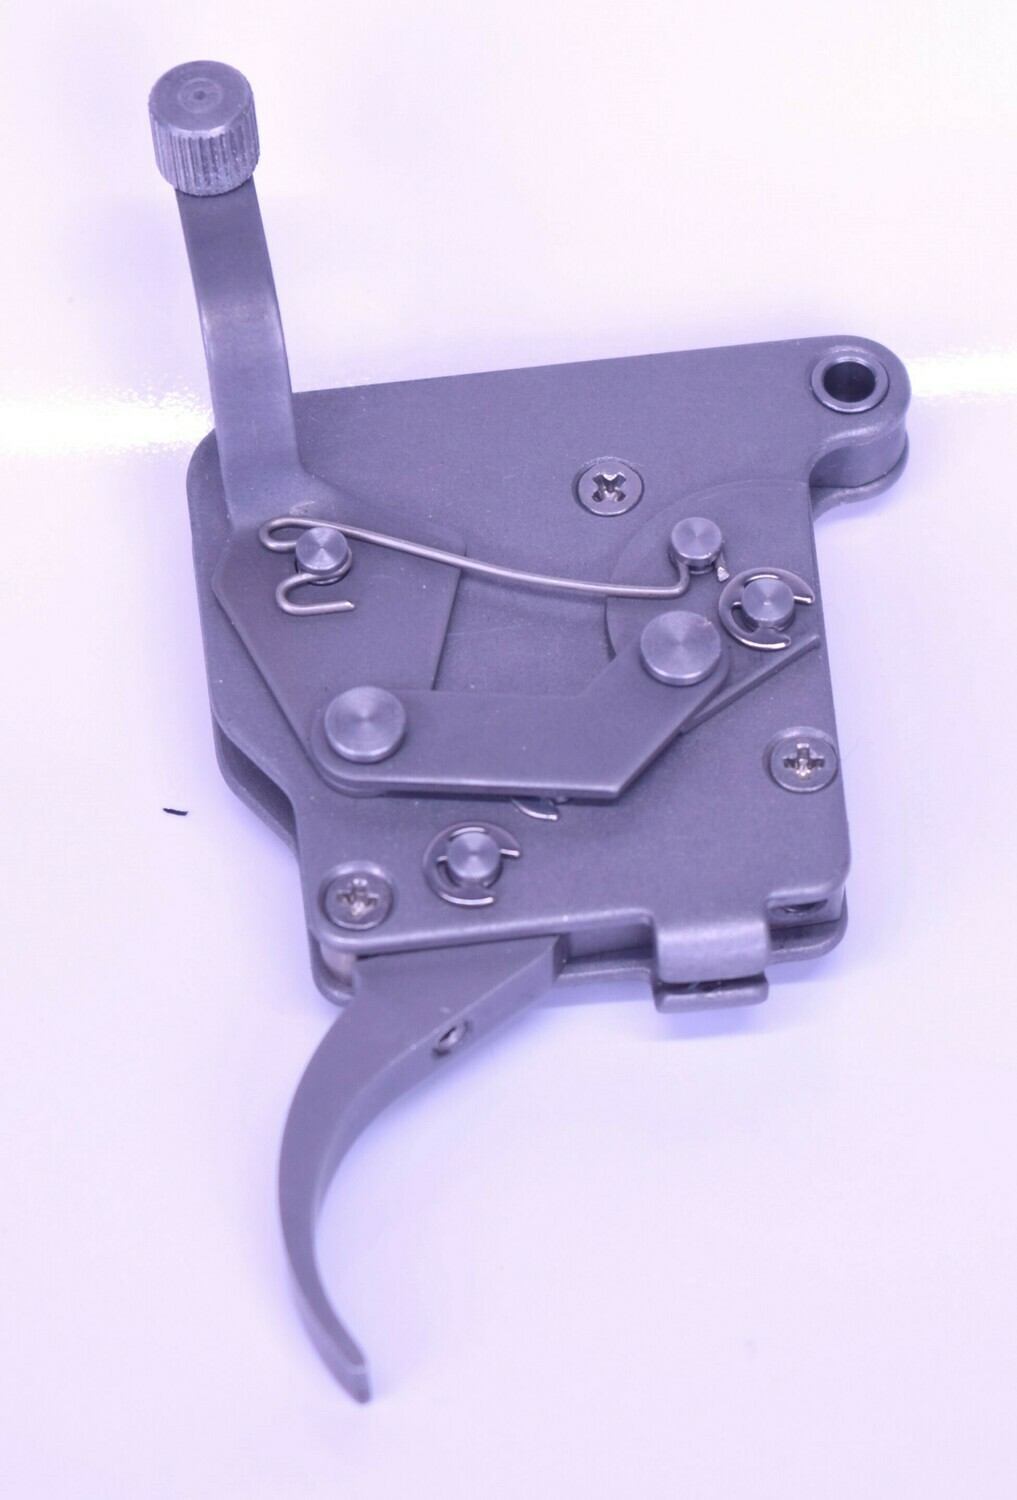 Jewell 1.5oz to 3lb Right Hand Trigger for Remington 700 Clones